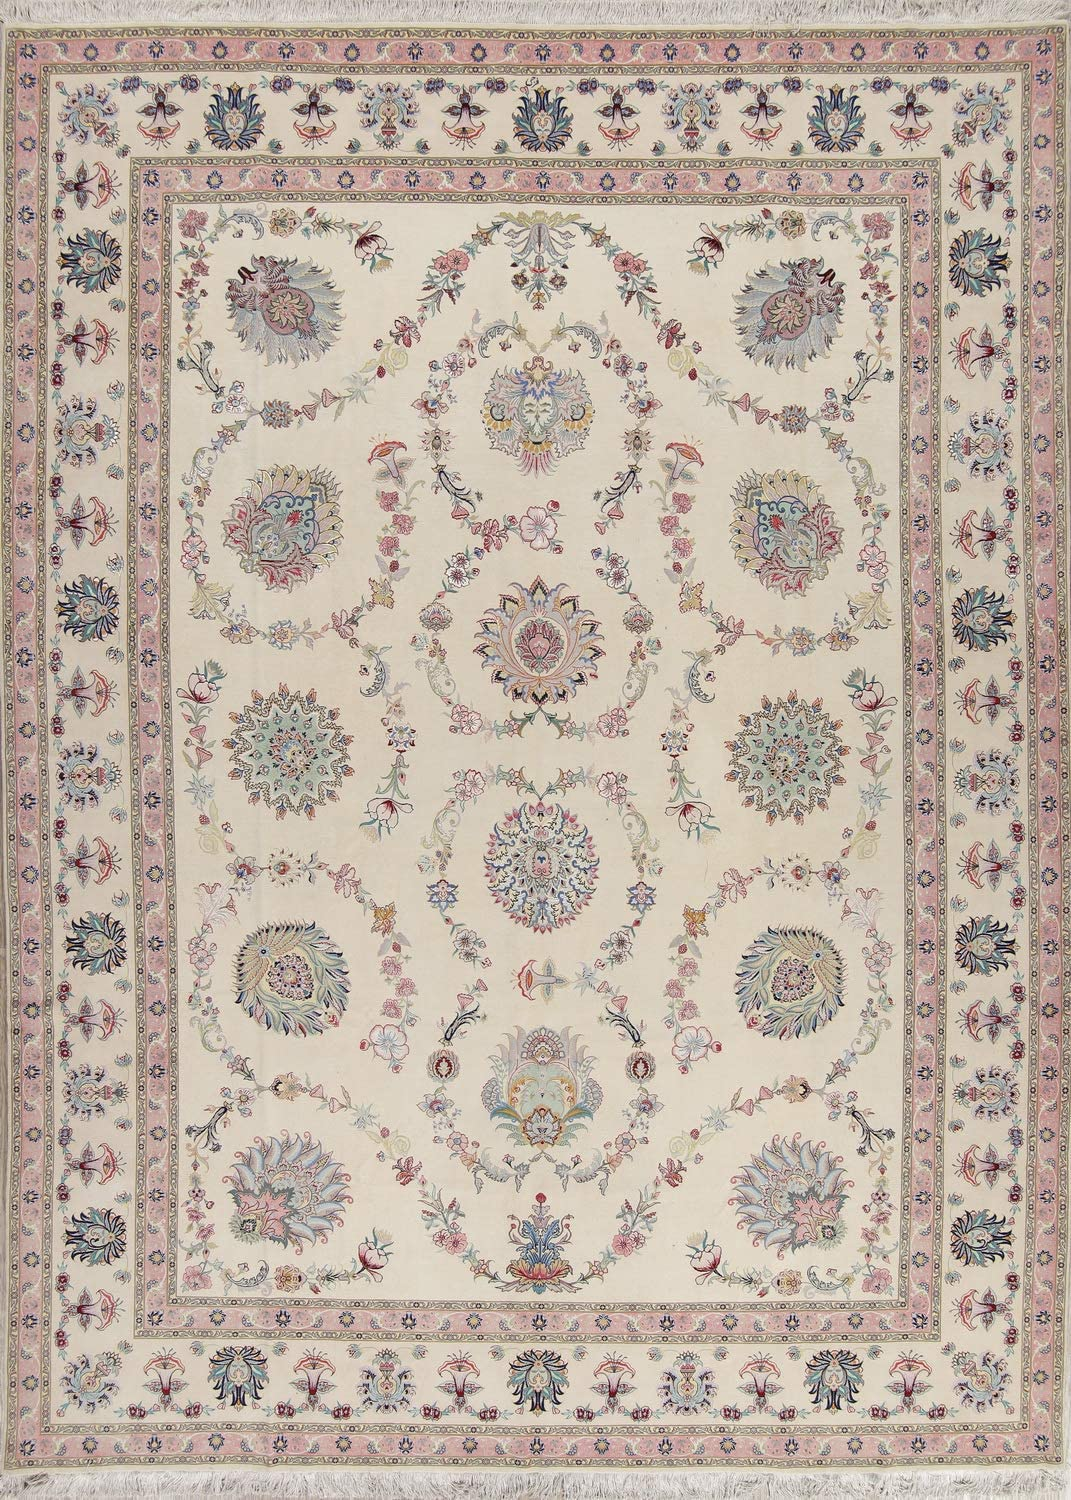 Amazon Com Rug Source Hand Knotted Wool Silk 400 Knots Ivory Oriental Area Rug 10 X13 Kitchen Dining